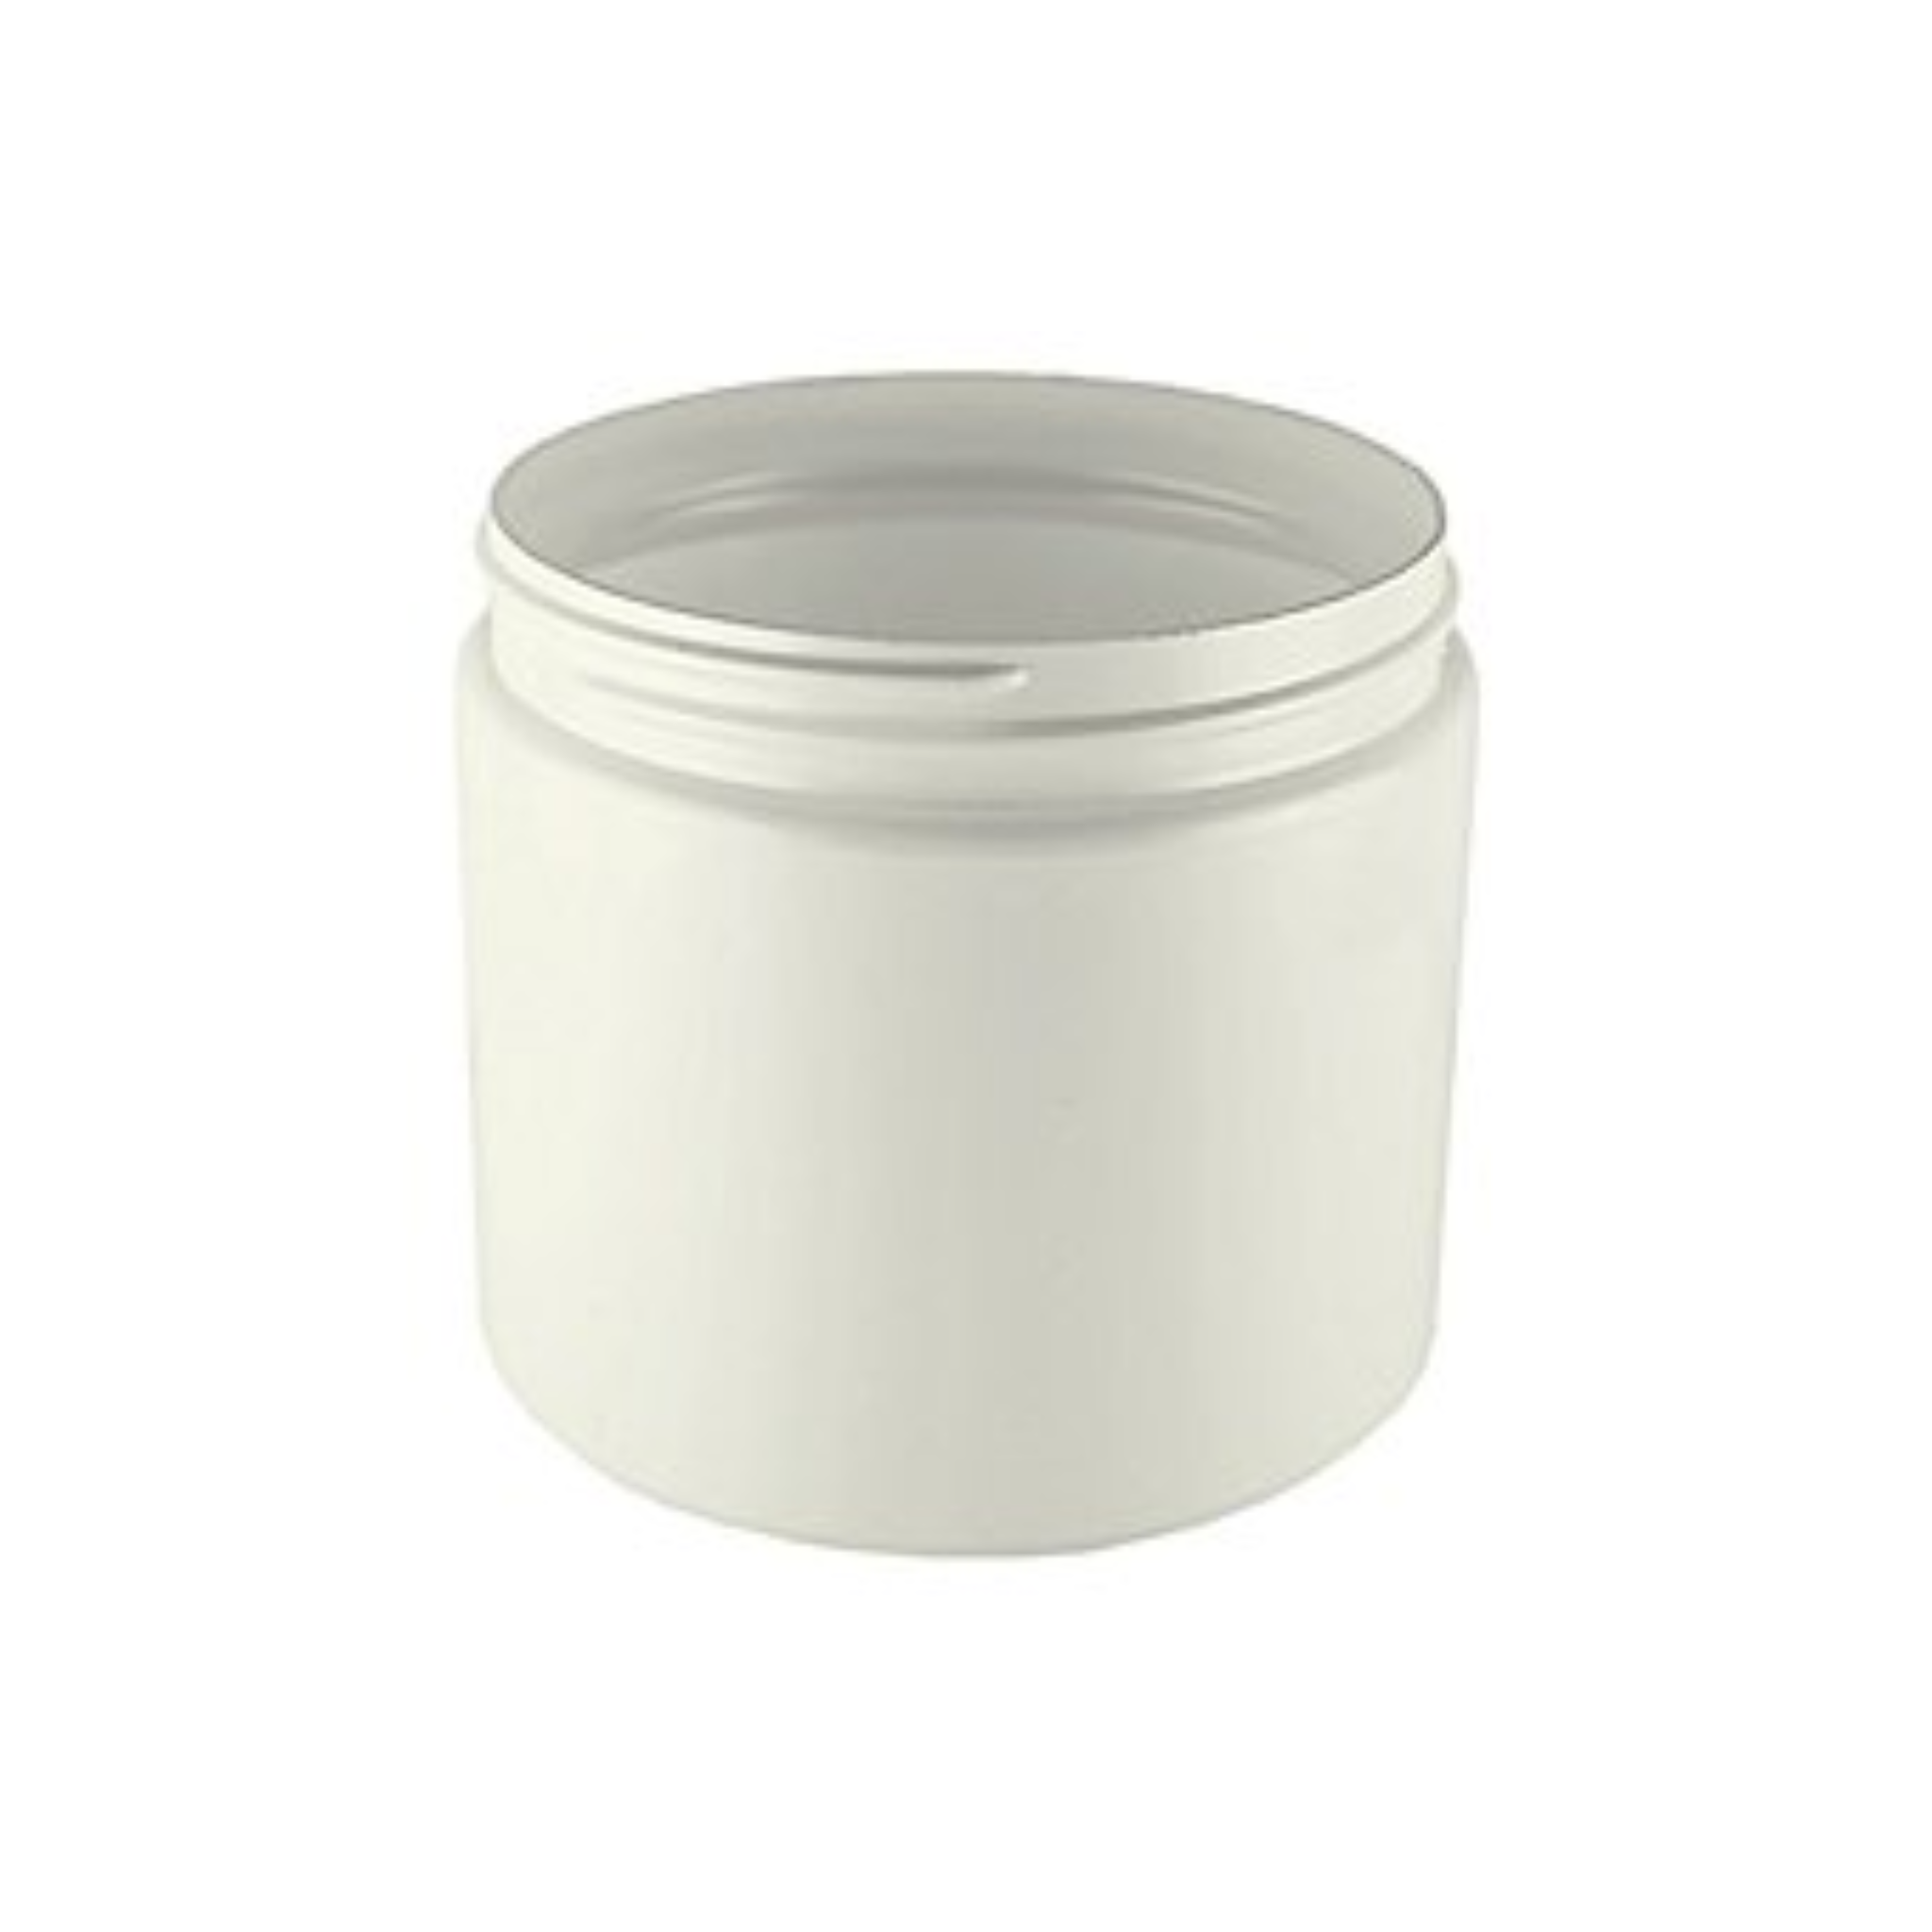 Cream Jar 500 ml White PET BPA Free Plastic Packaging